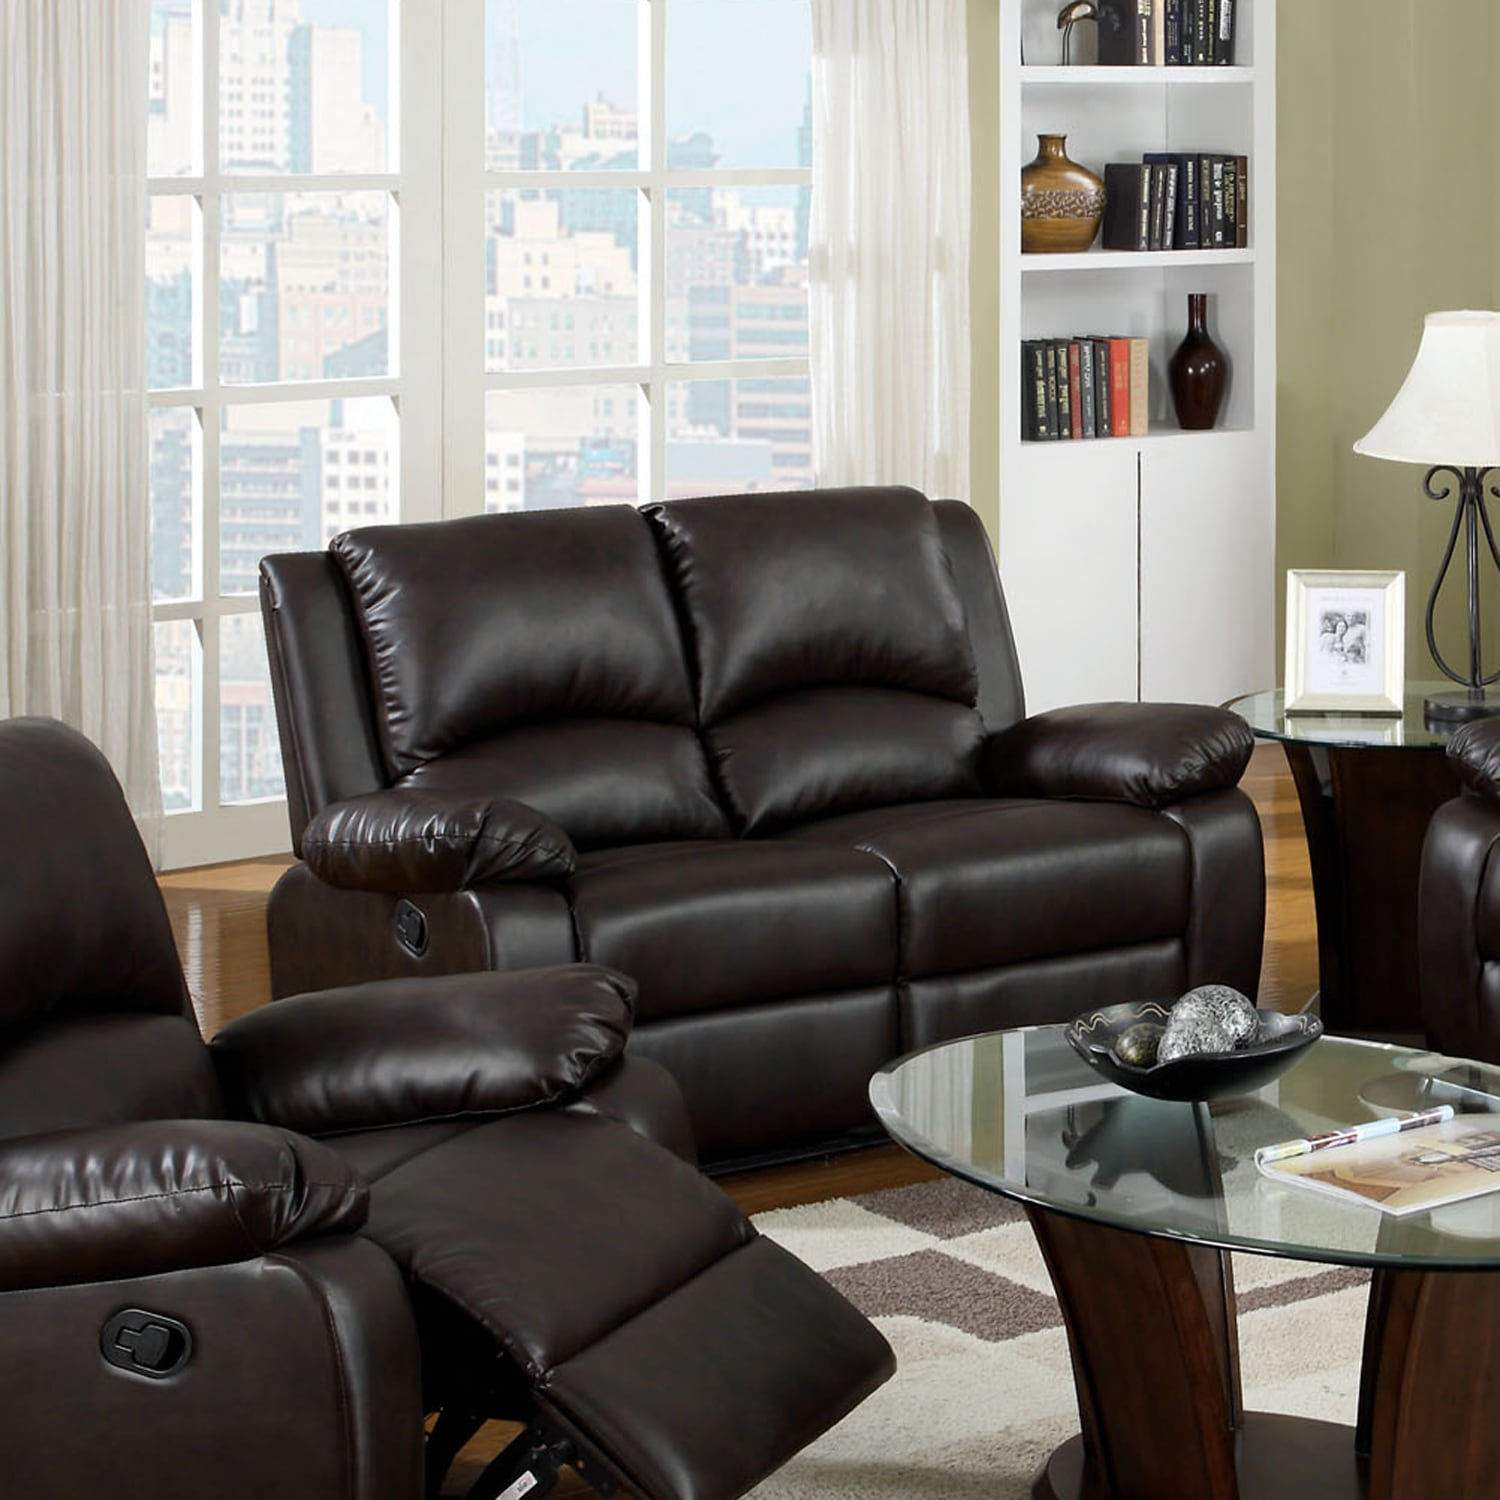 Furniture Of America Taveren Transitional Rustic Dark Brown Leatherette Reclining Loveseat